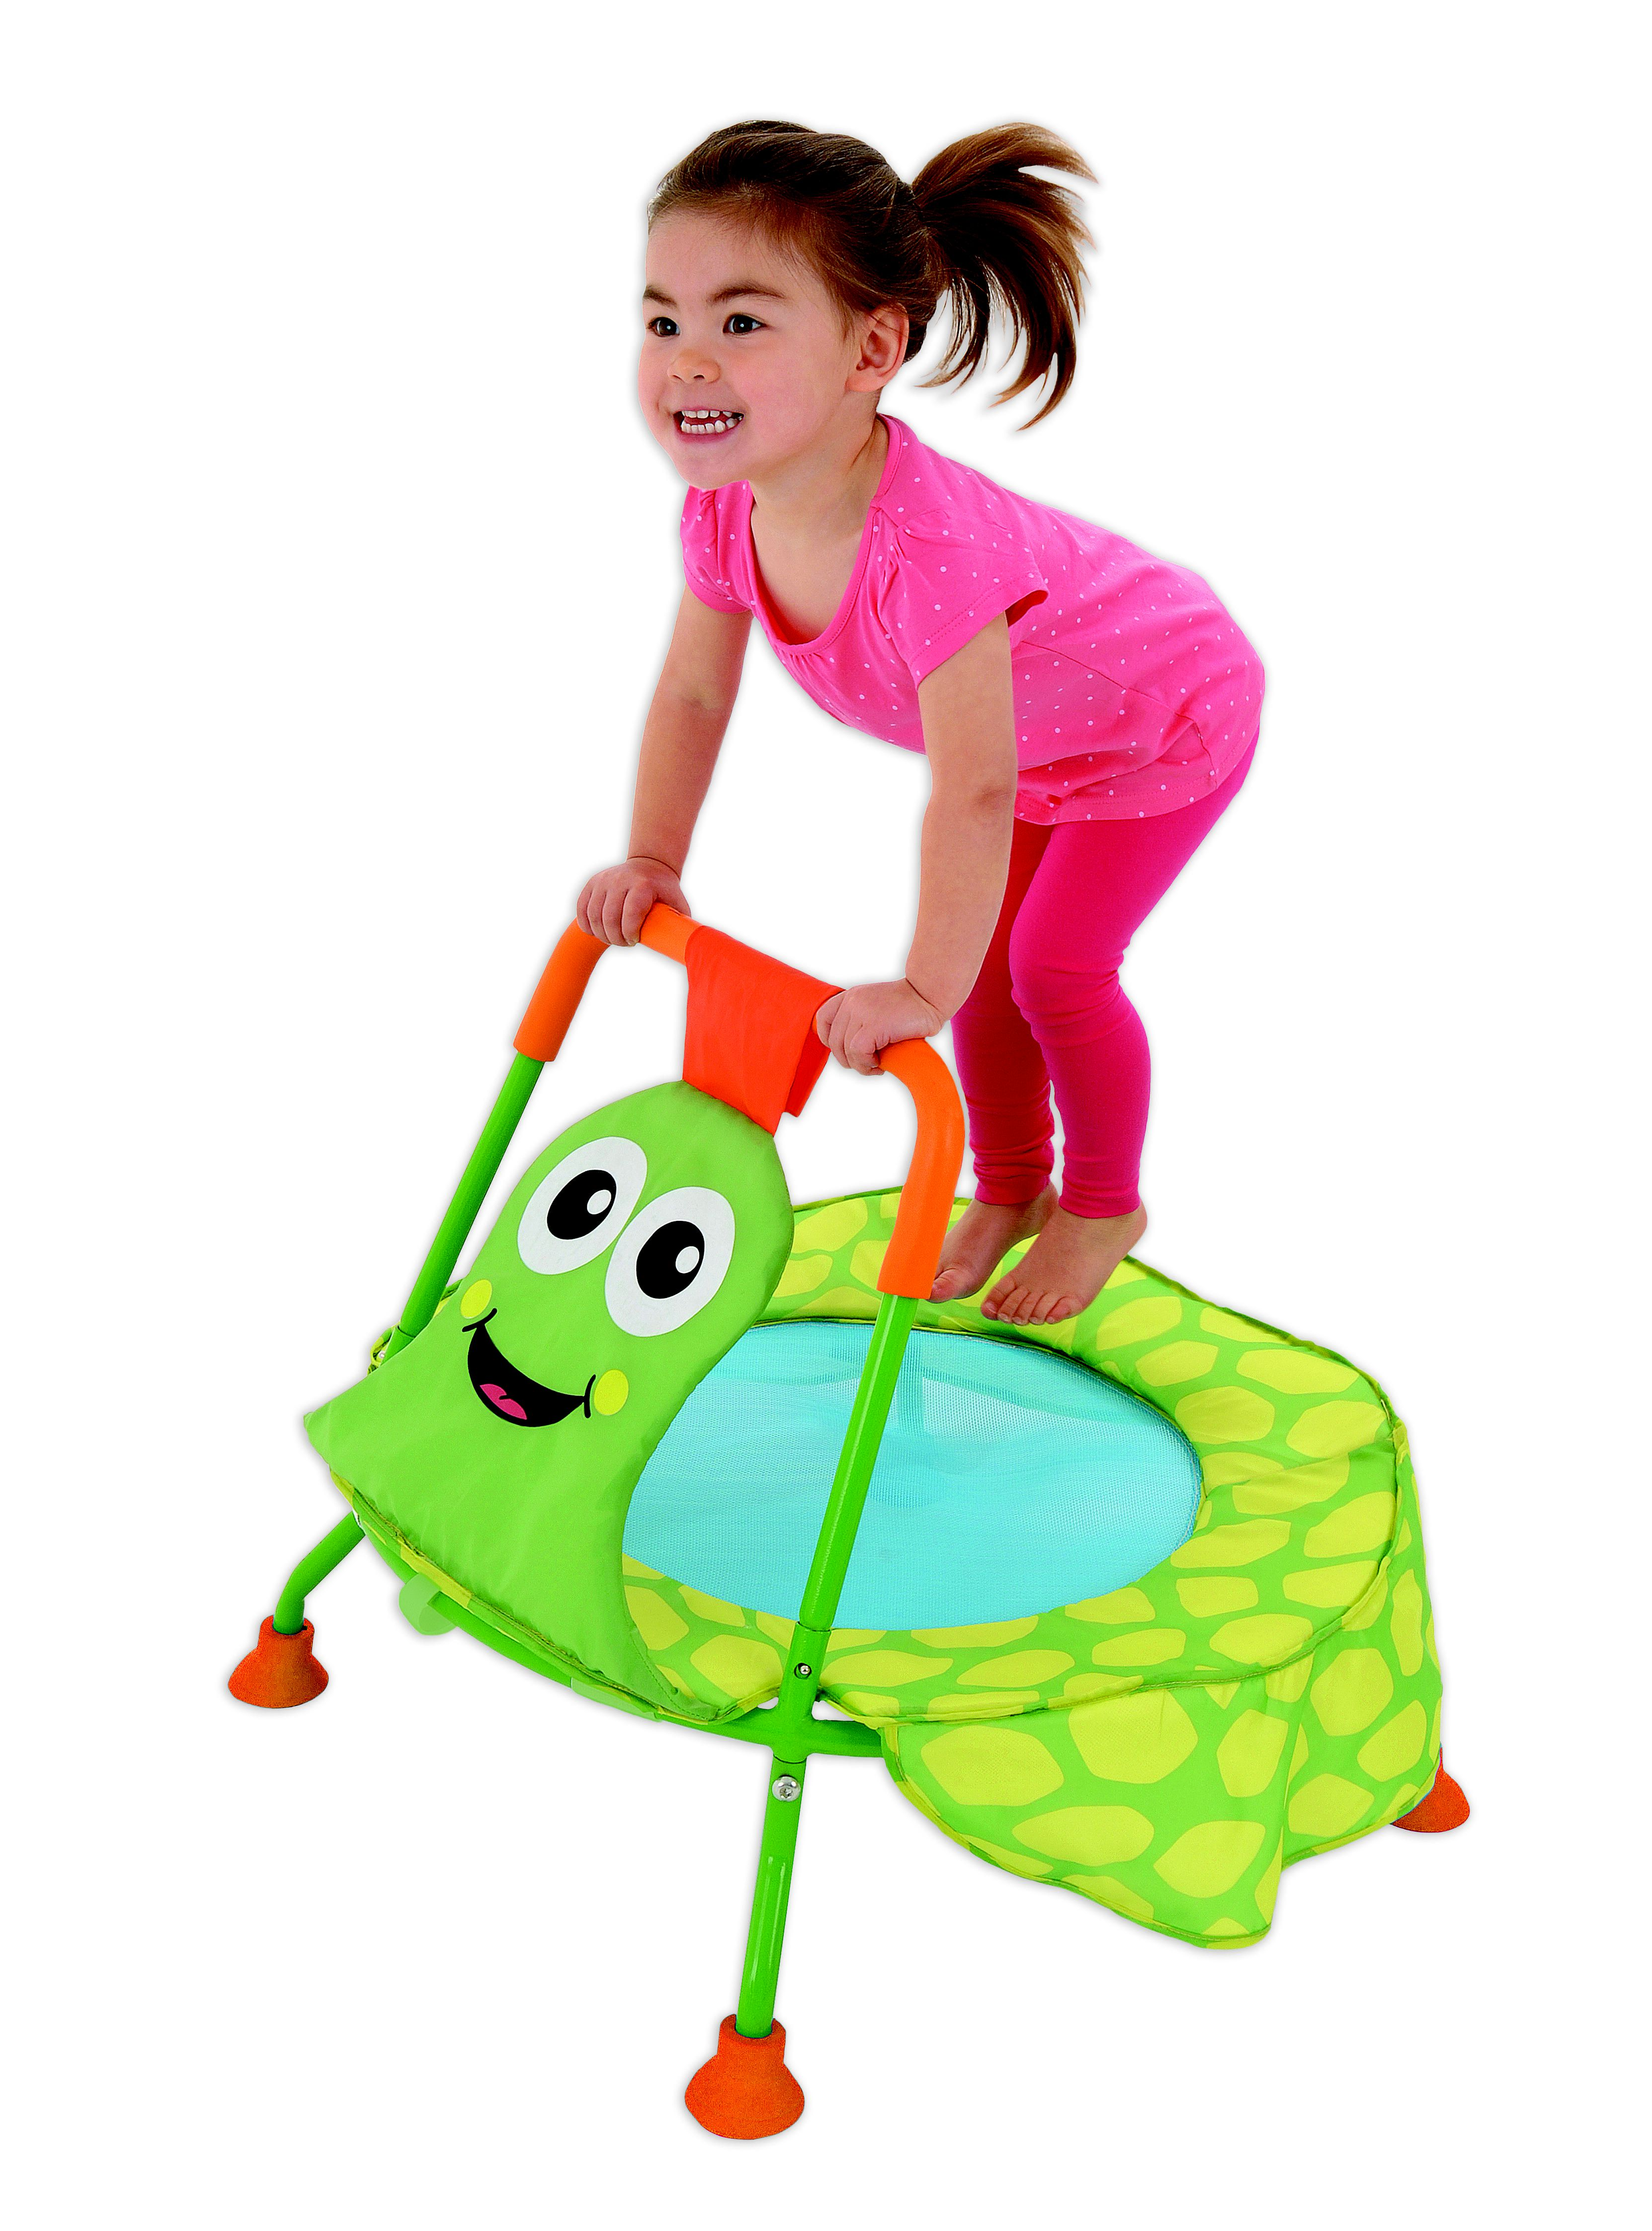 Toys That Promote Exercise for Kids